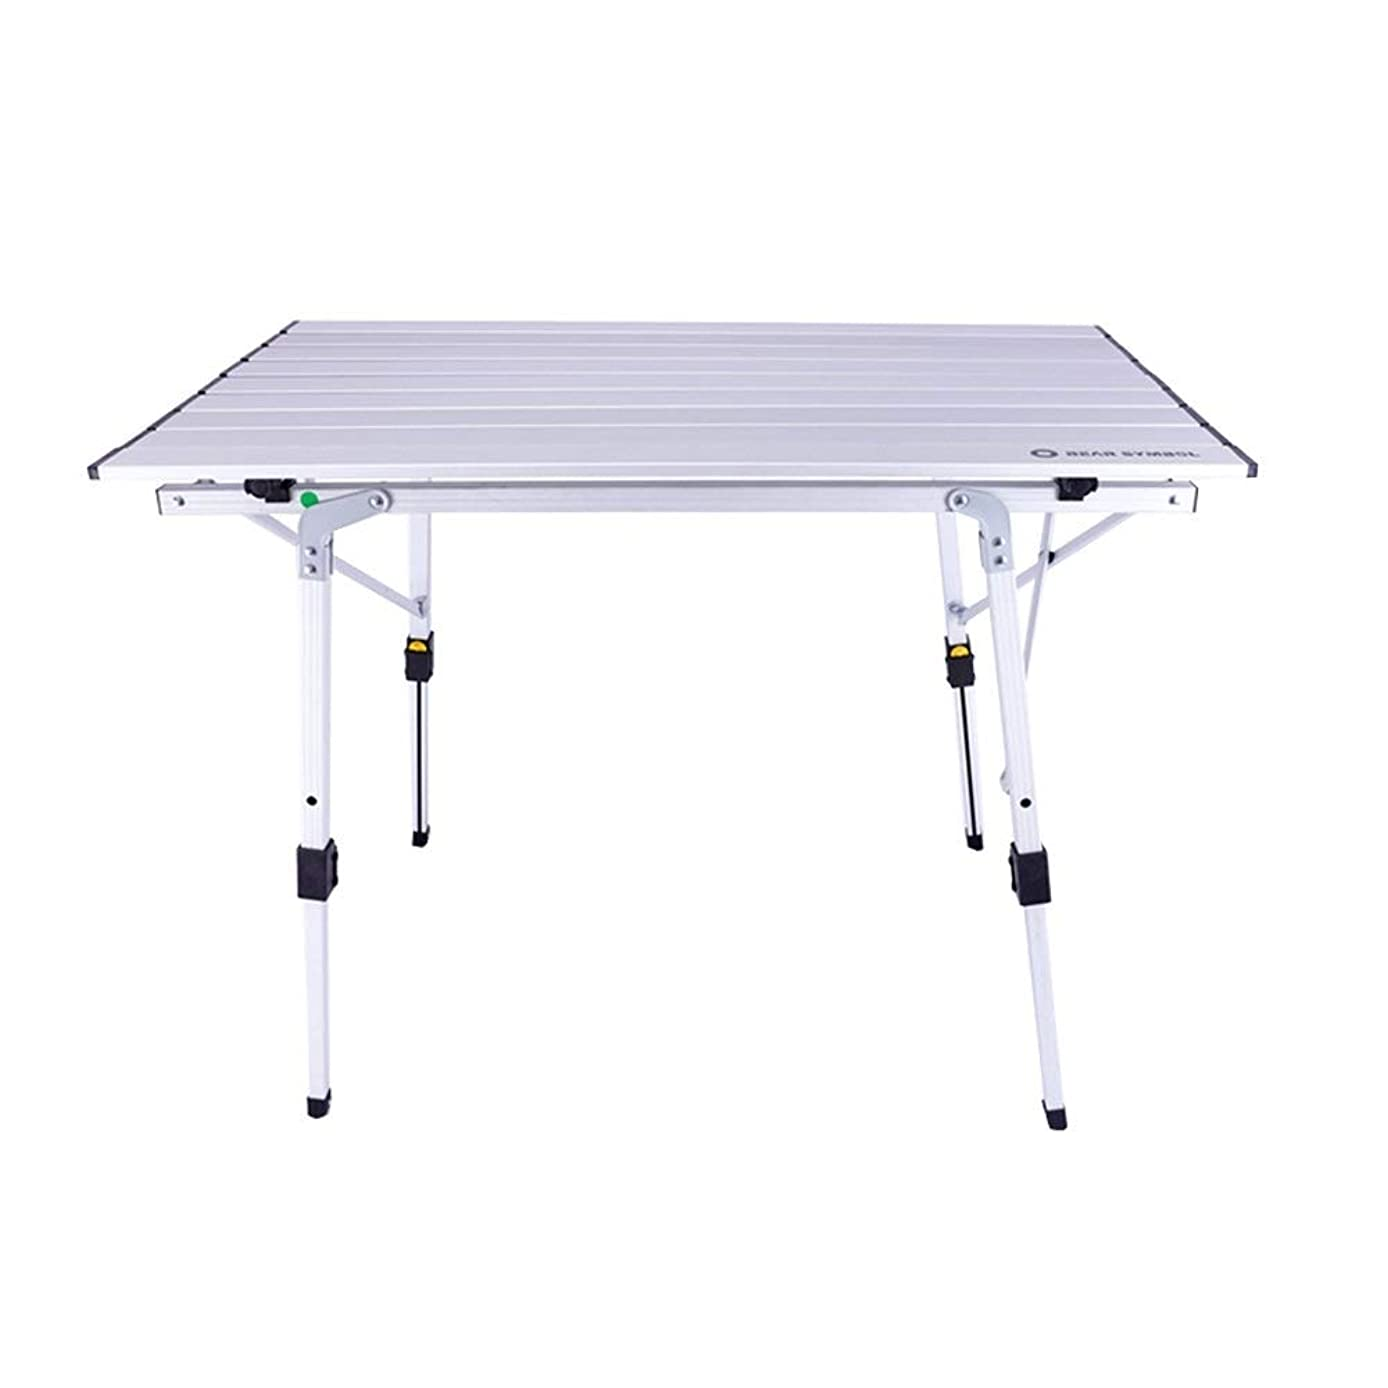 Folding Picnic Table Portable Lightweight Sturdy Durable Outdoor Indoor Camping BBQ Garden Terrace Party Self-Driving Beach Yard Family 2 Colors Optional (Color : Silver)